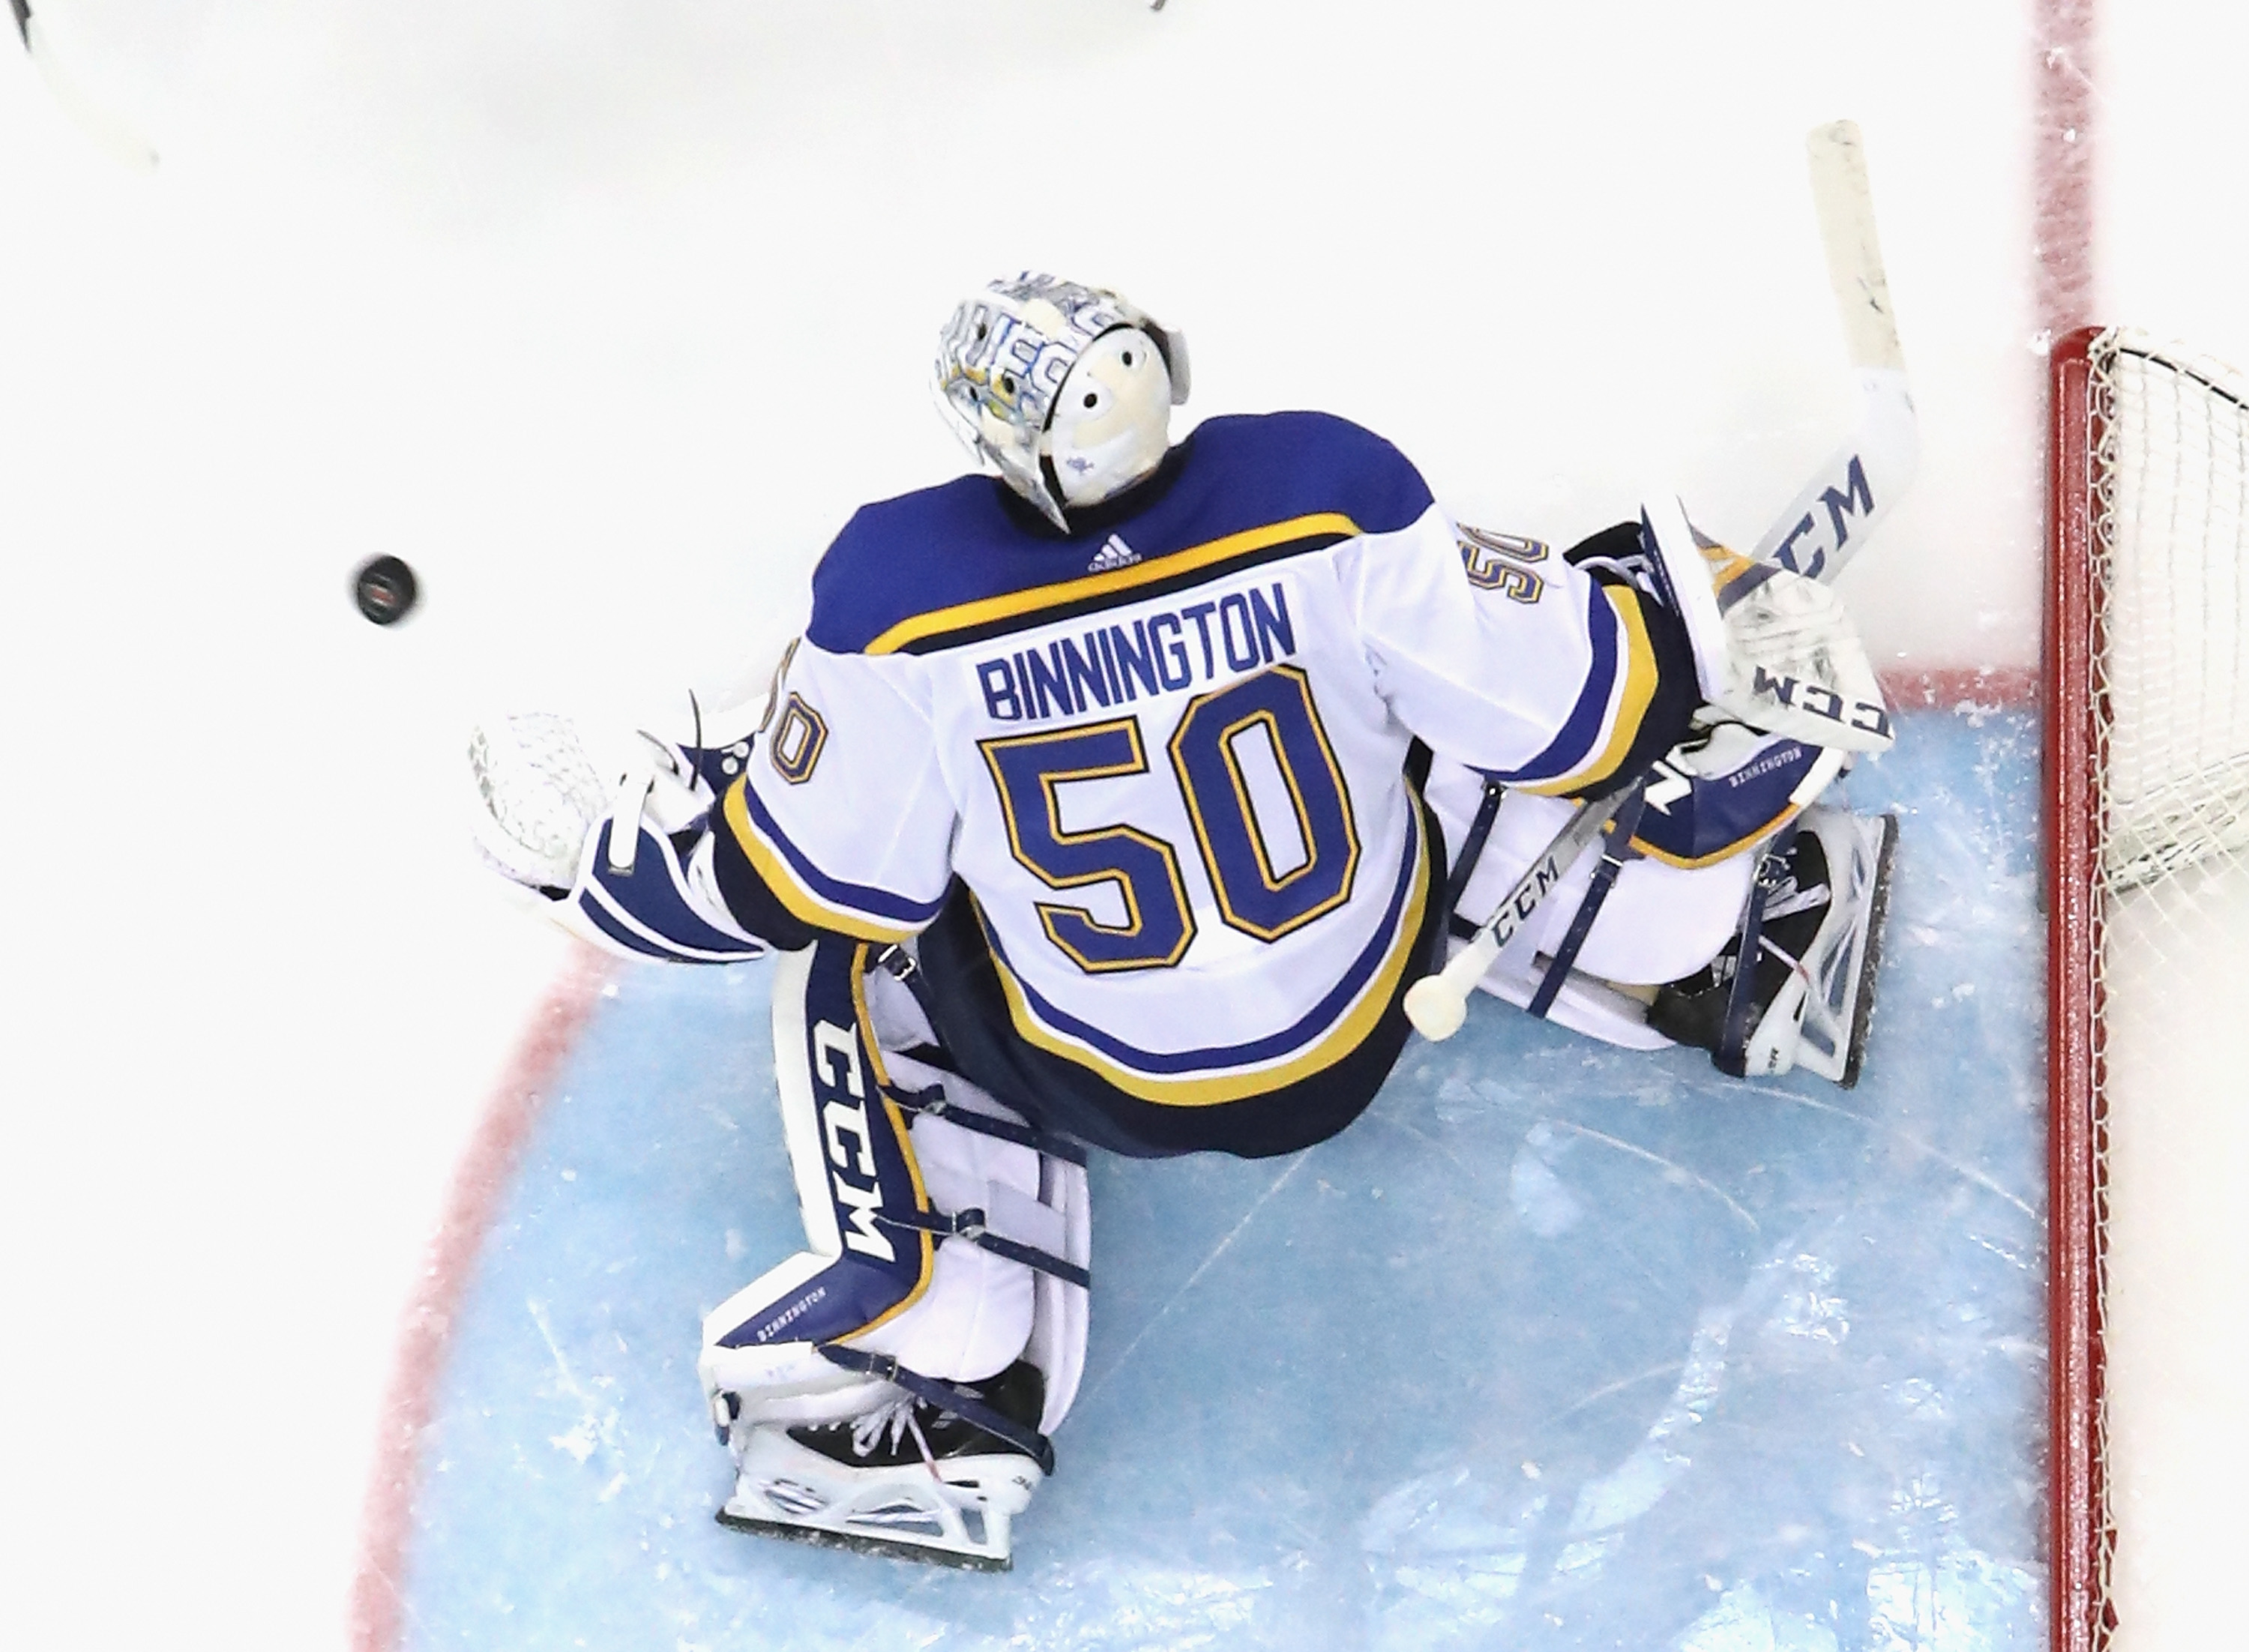 Jordan Binnington #50 of the St. Louis Blues skates against the New Jersey Devils at the Prudential Center on March 06, 2020 in Newark, New Jersey. The Devils defeated the Blues 4-2.